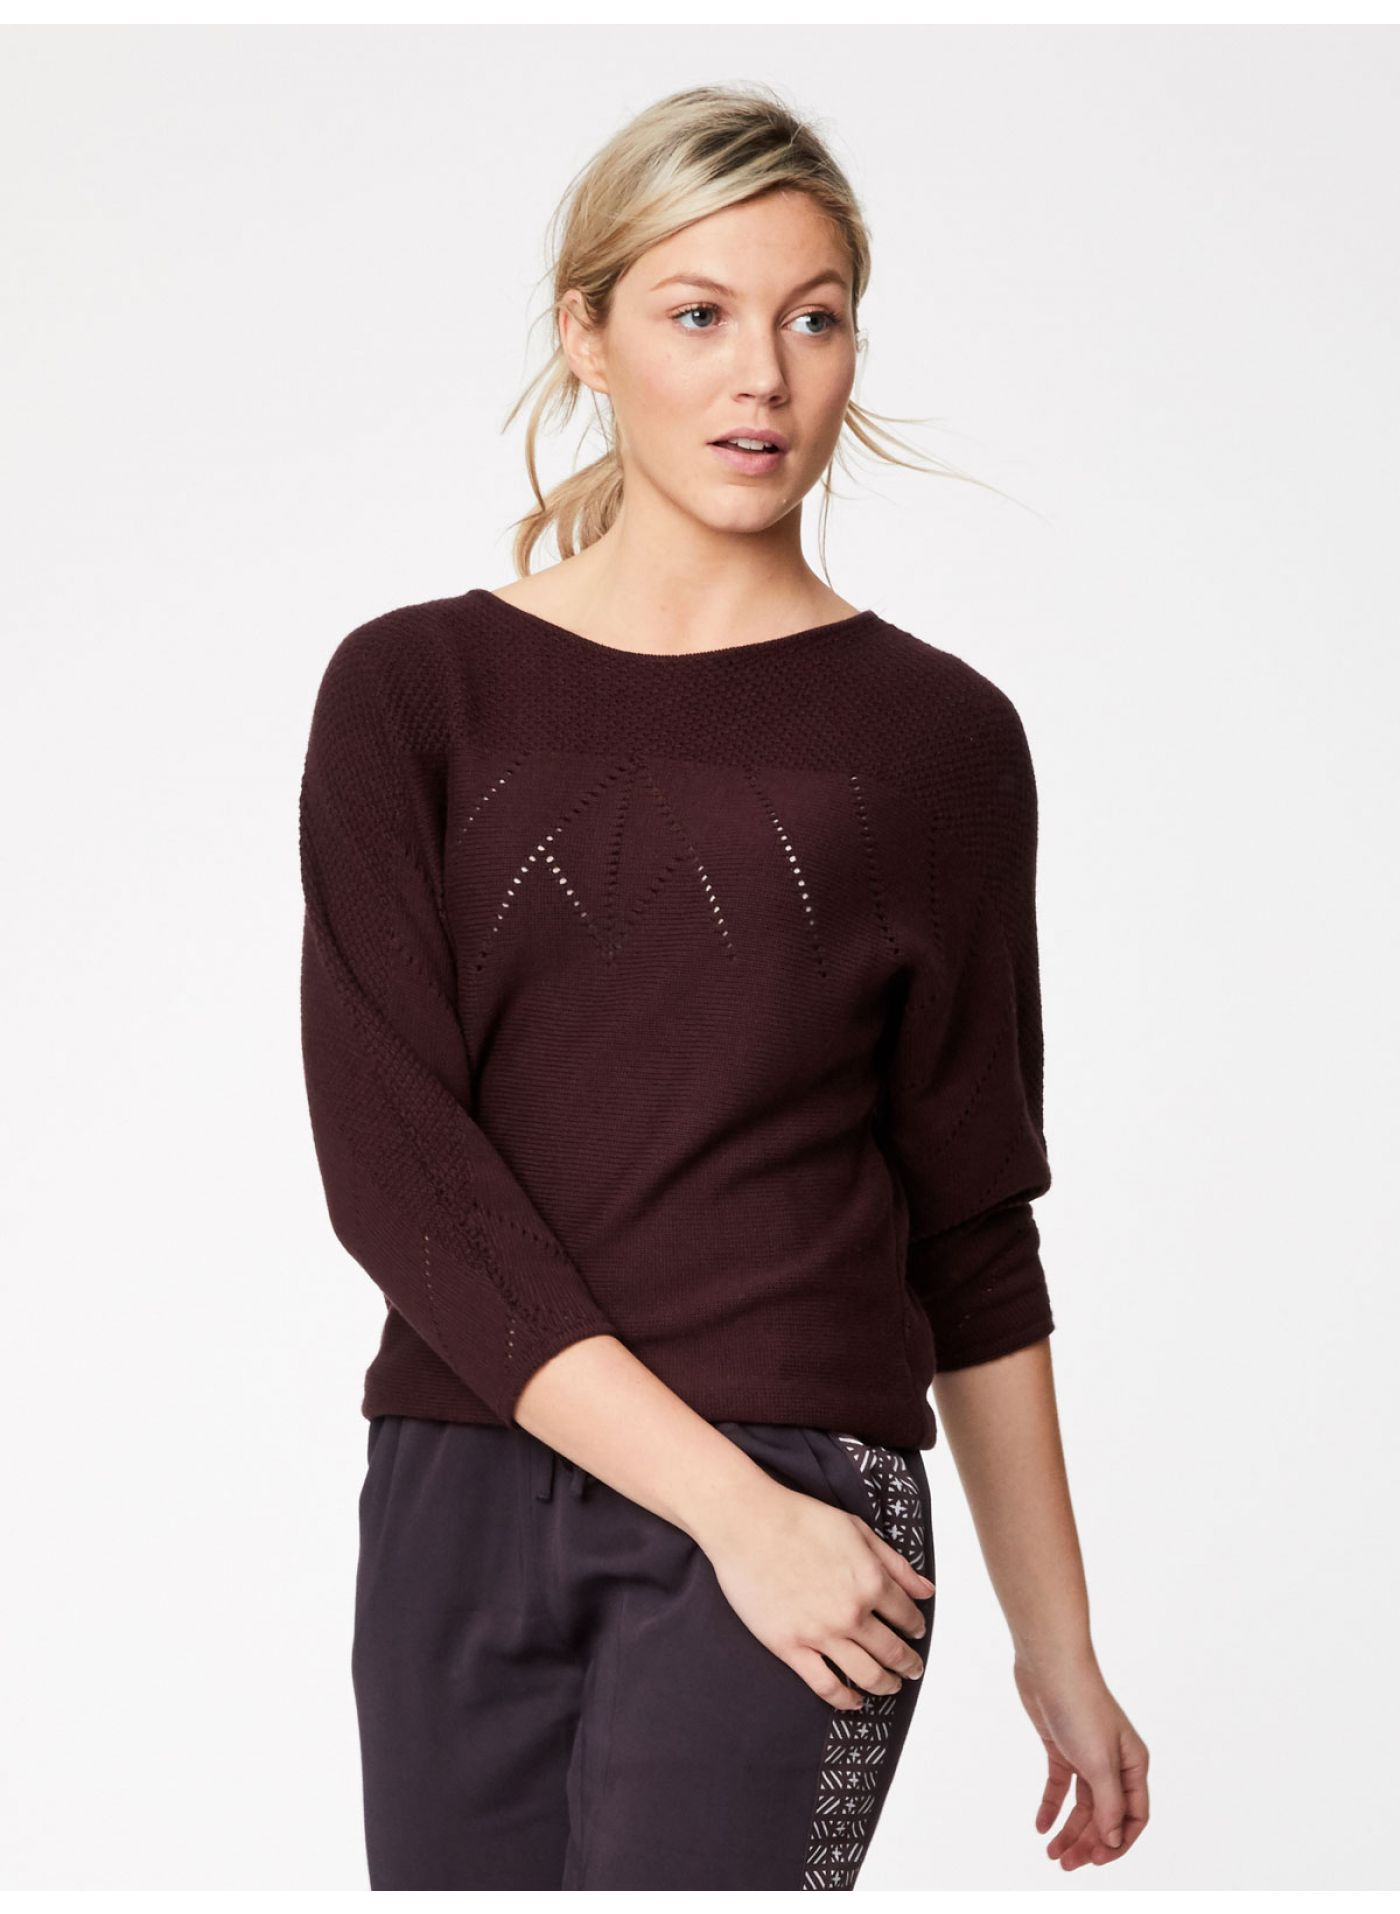 Marcella jumper from The Blind Spot